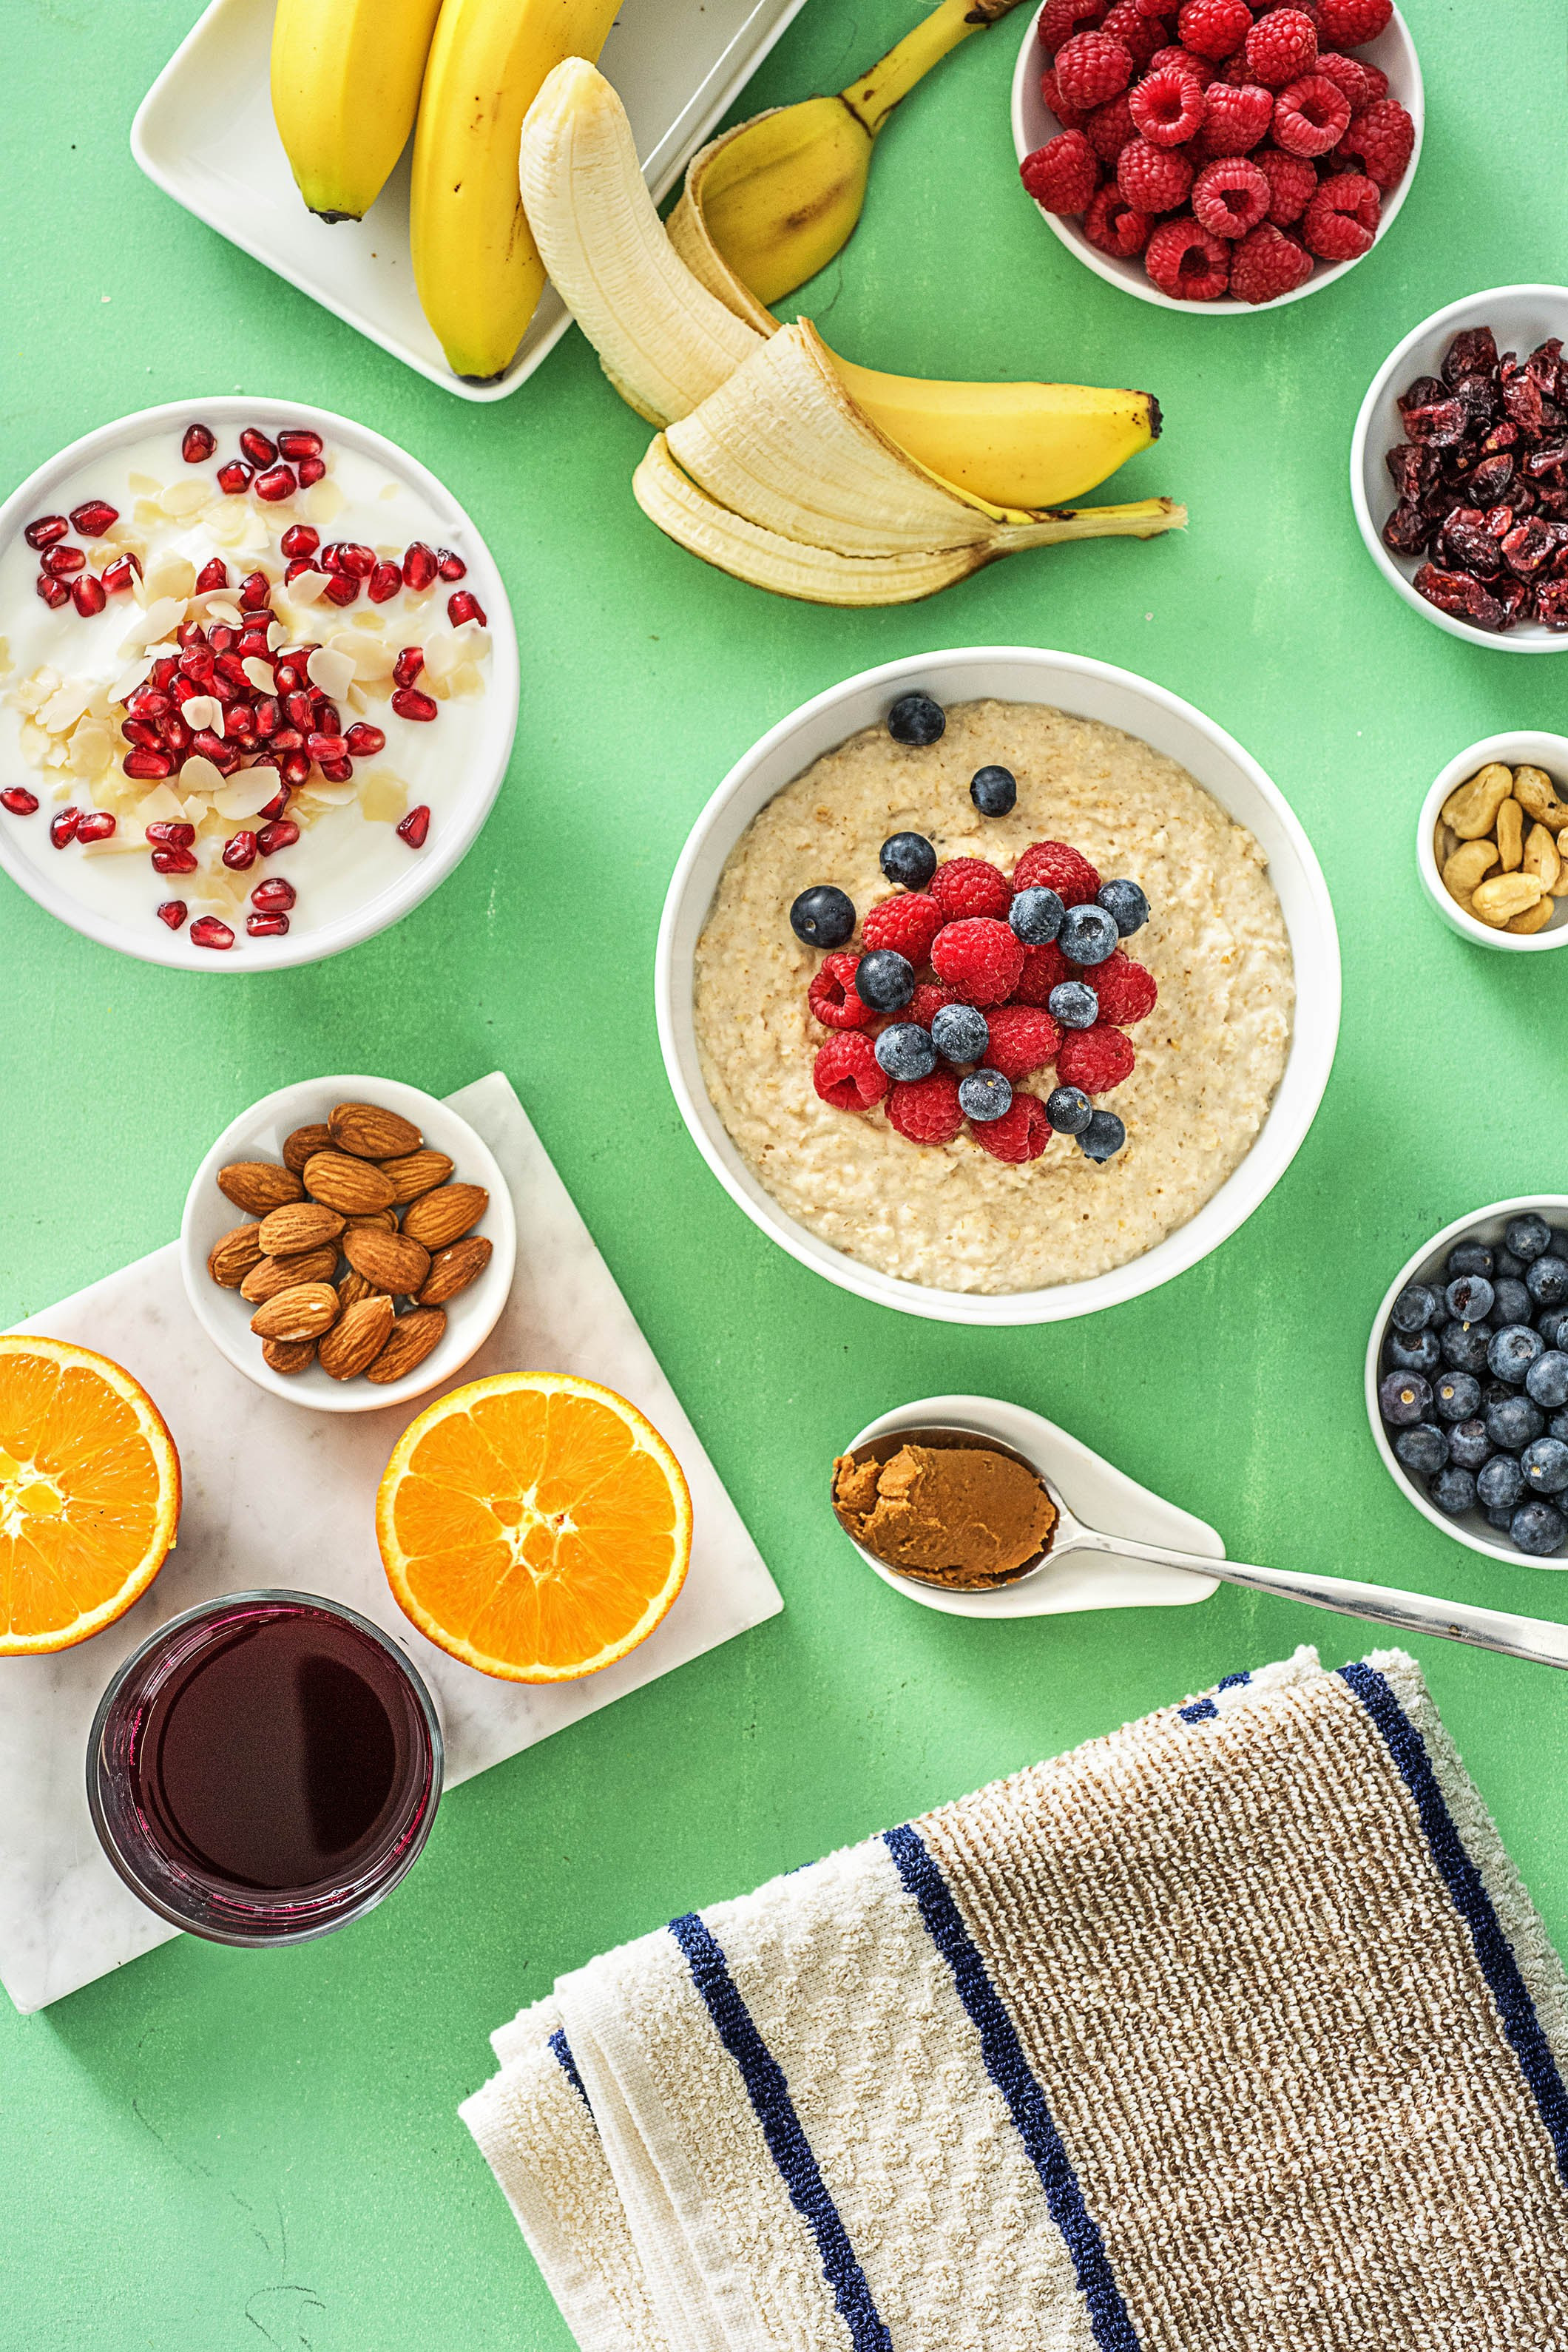 Healthy Breakfast Before Workout  What To Eat When Working Out